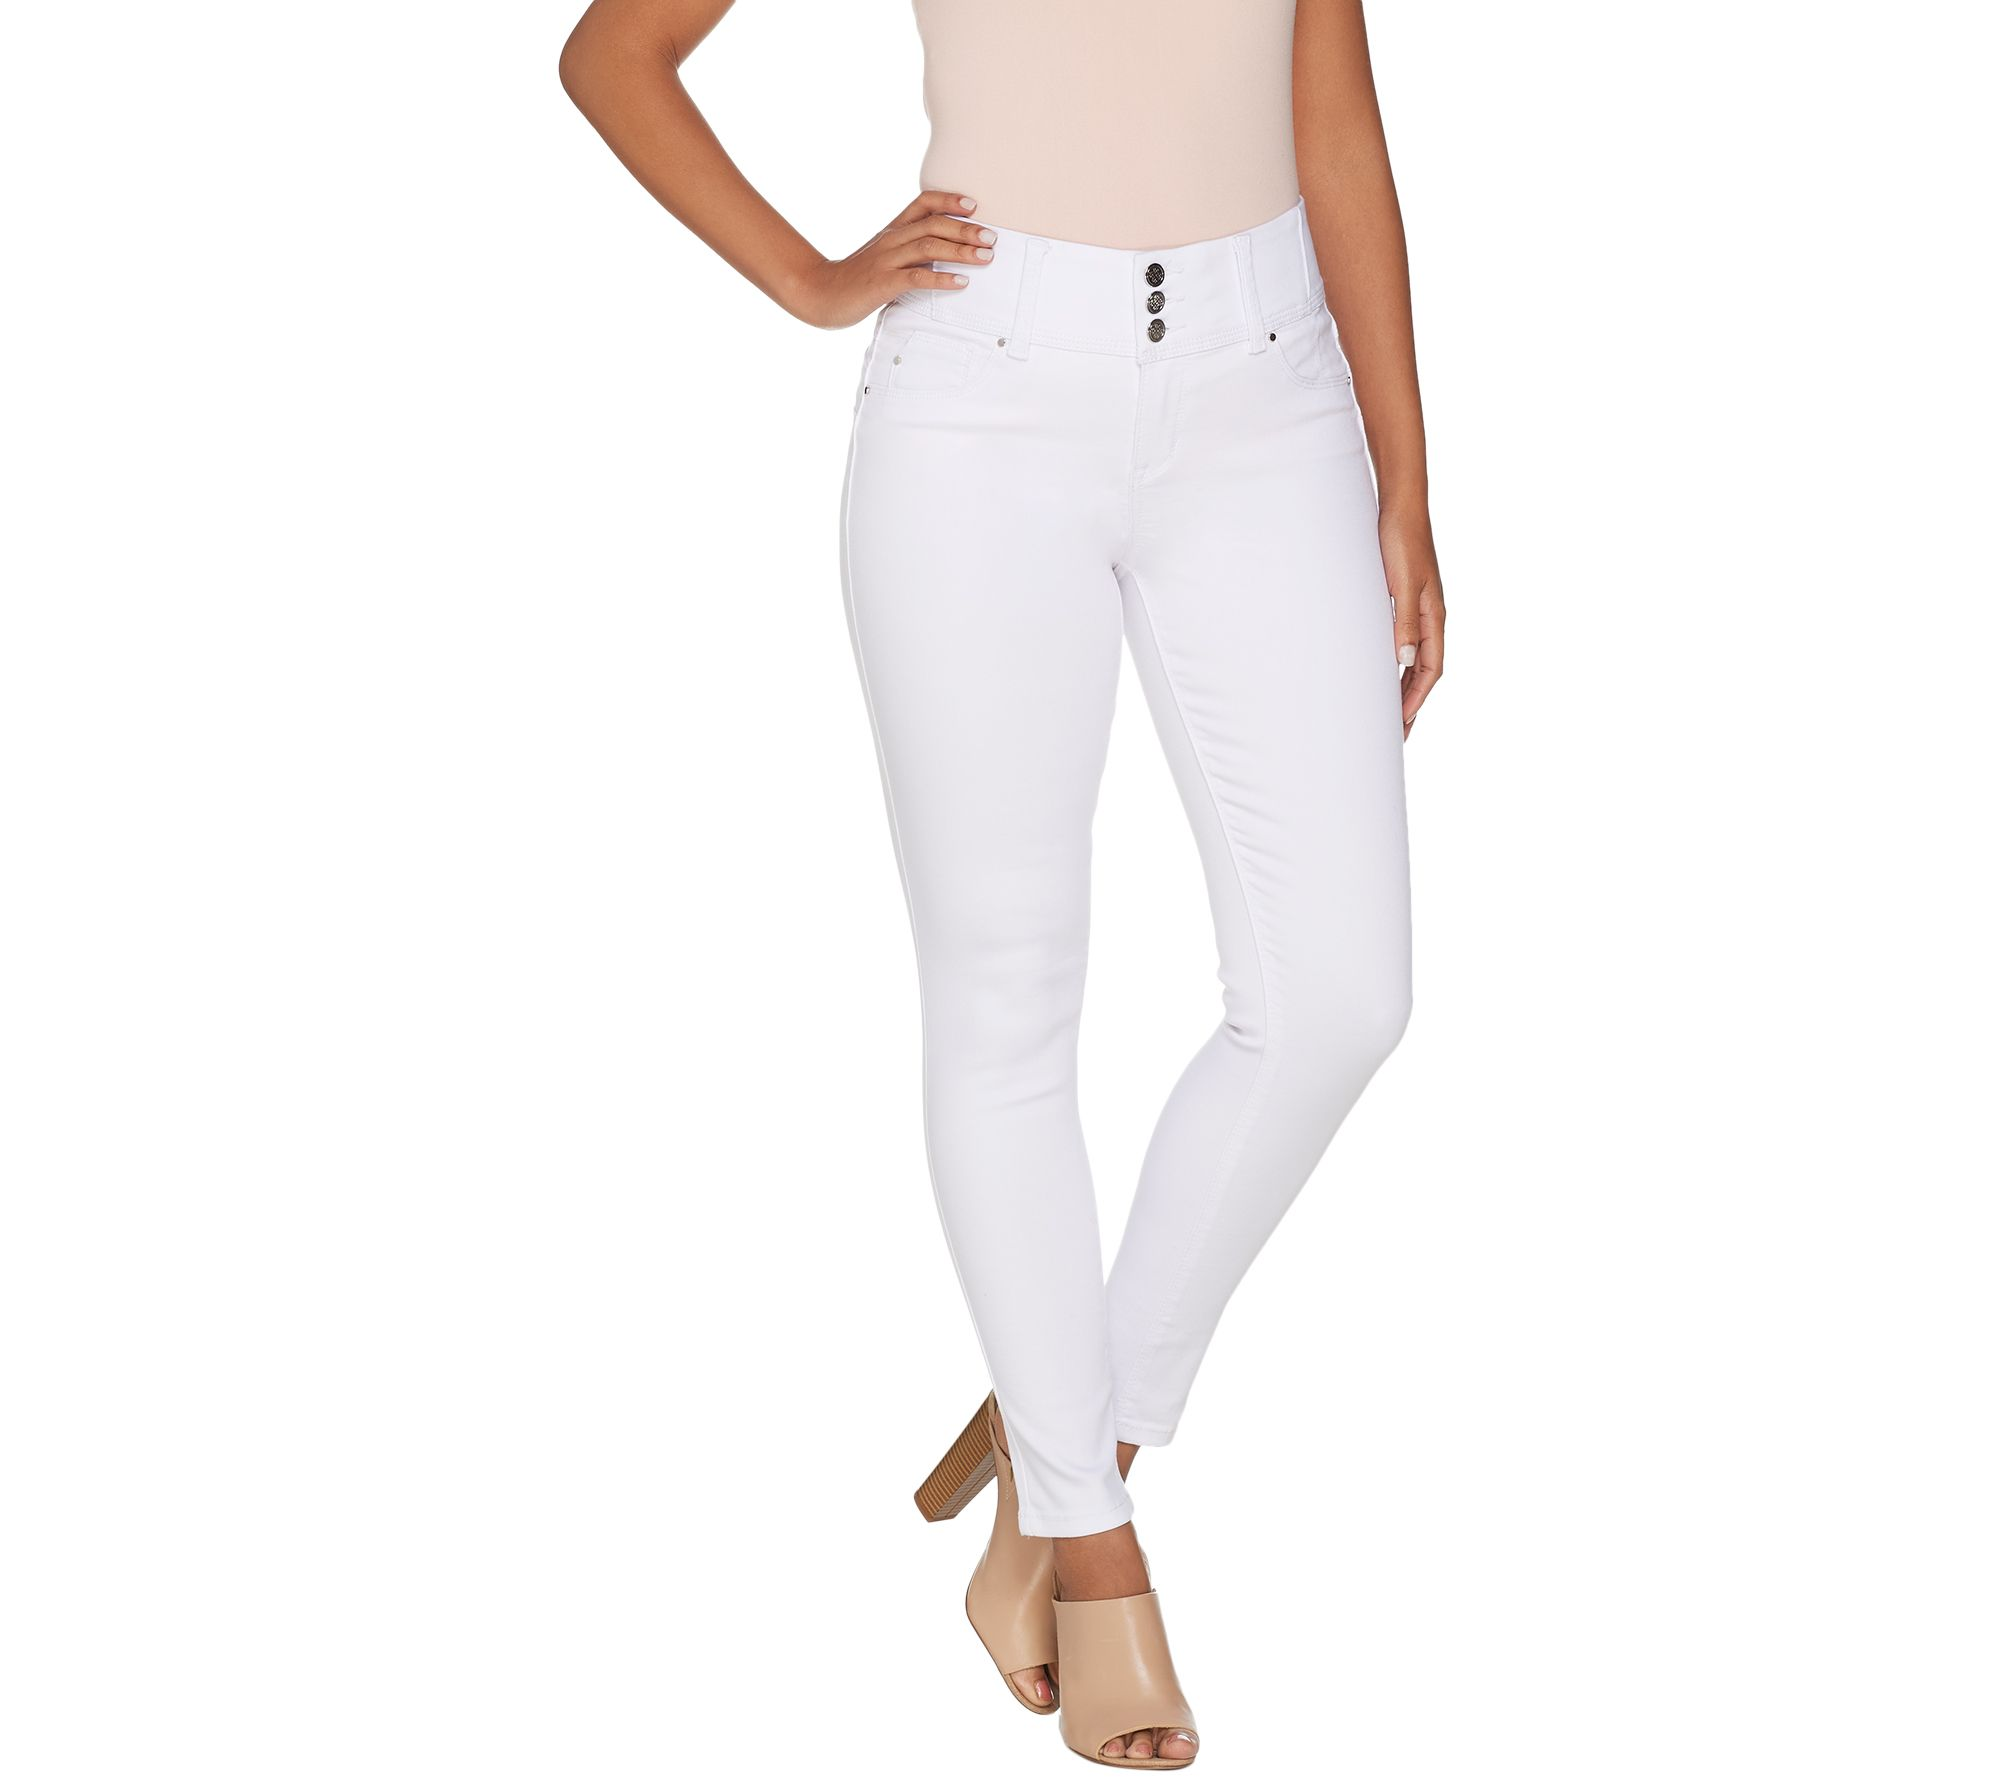 Laurie Felt Silky Denim Curve Skinny Ankle Jeans White M NEW A305680